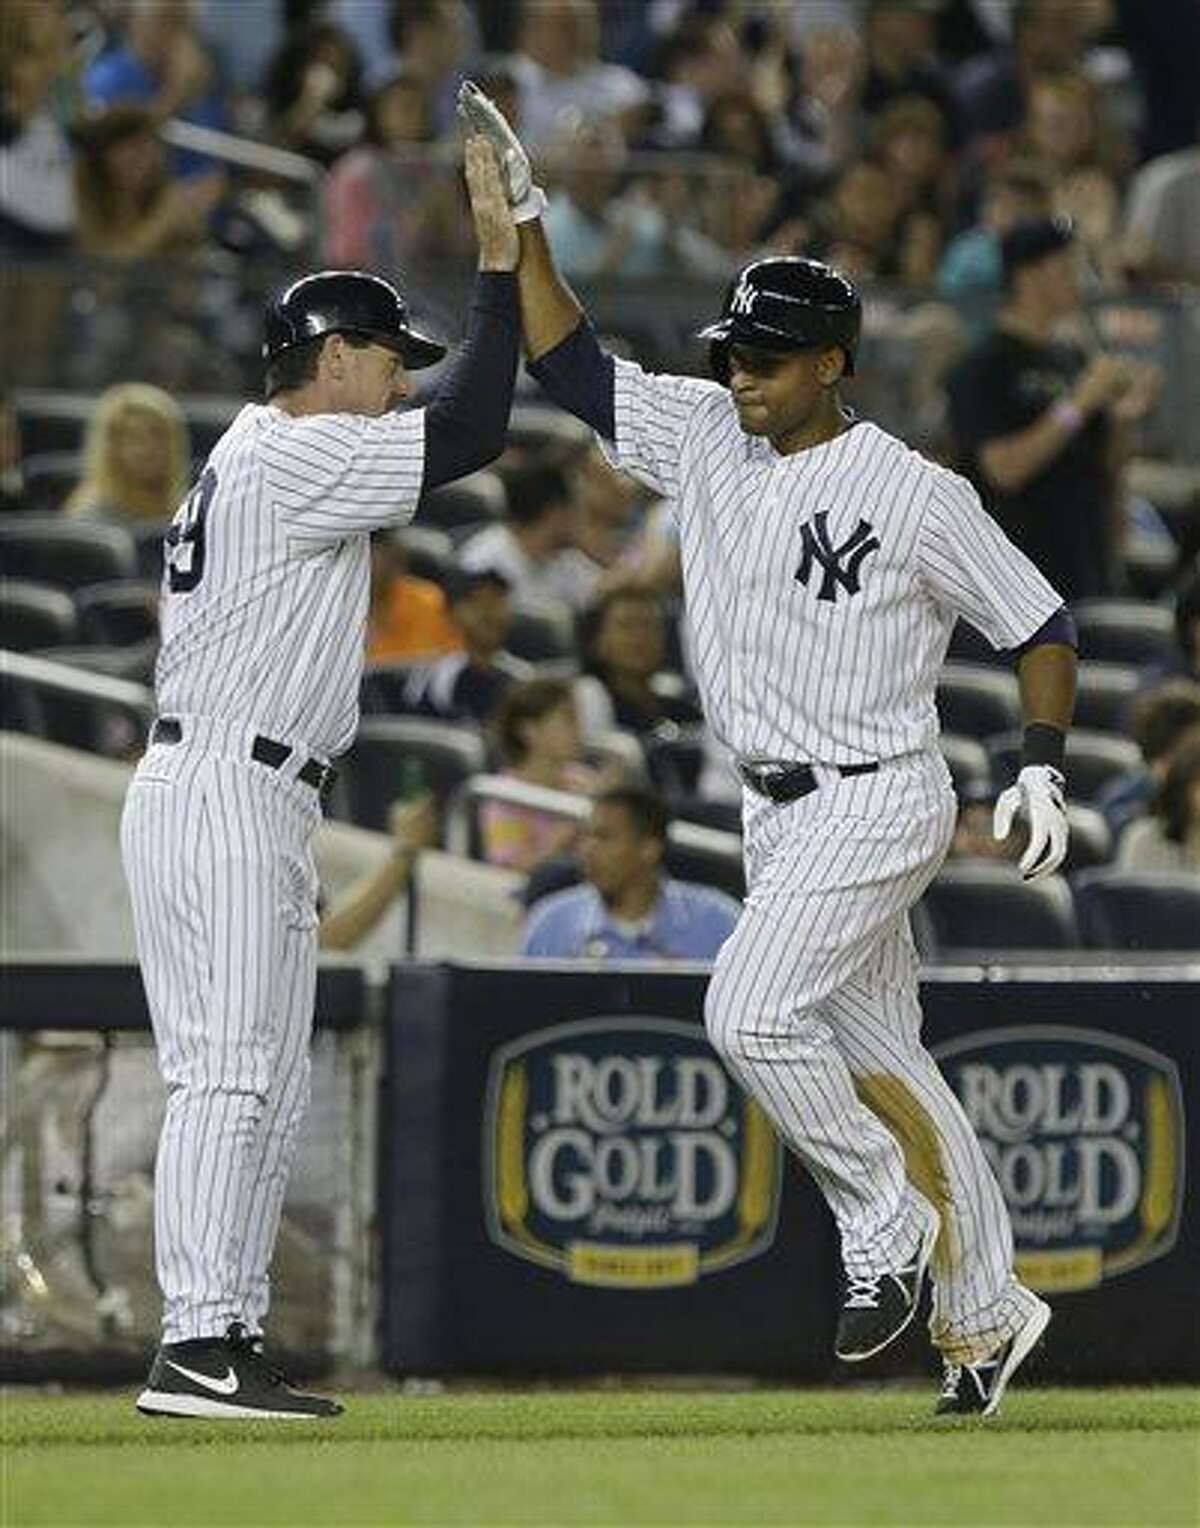 New York Yankees' Zoilo Almonte, right, celebrates with third base coach Rob Thomson as he heads to home plate after hitting a home run during the sixth inning of a baseball game on Friday, June 21, 2013, in New York. (AP Photo/Frank Franklin II)